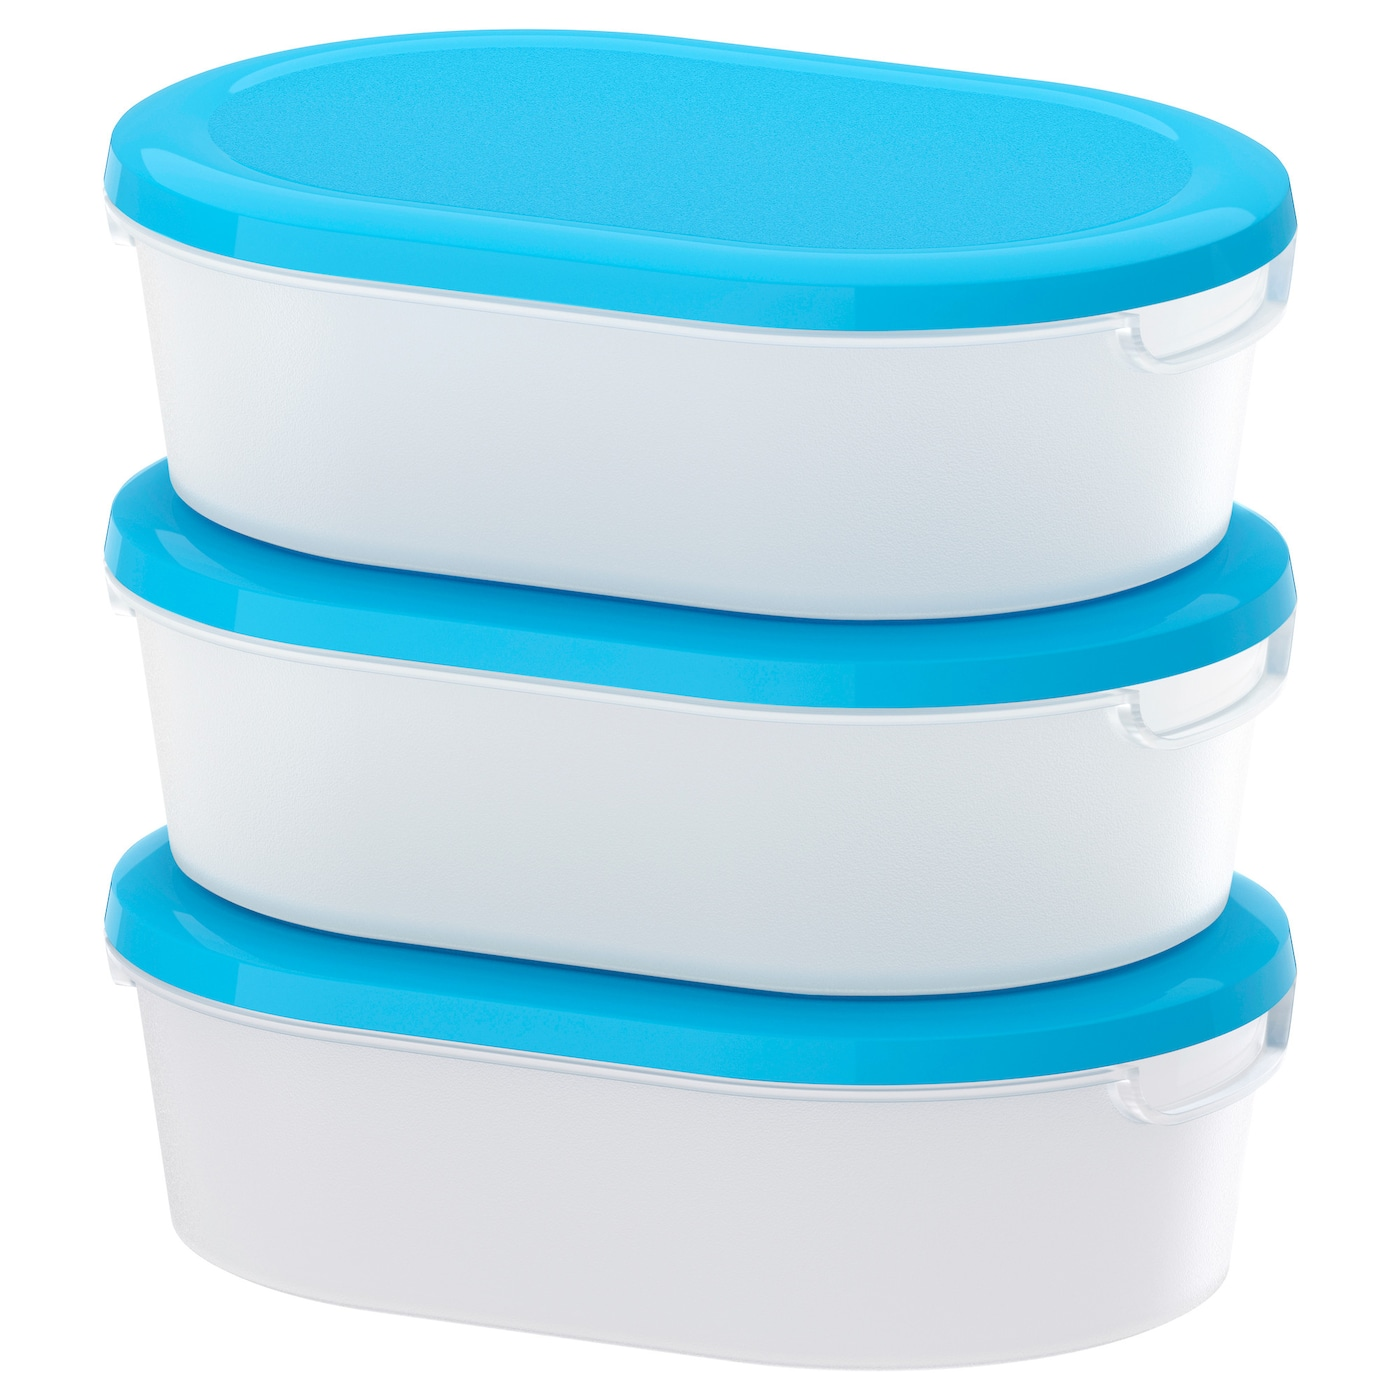 IKEA JÄMKA food container